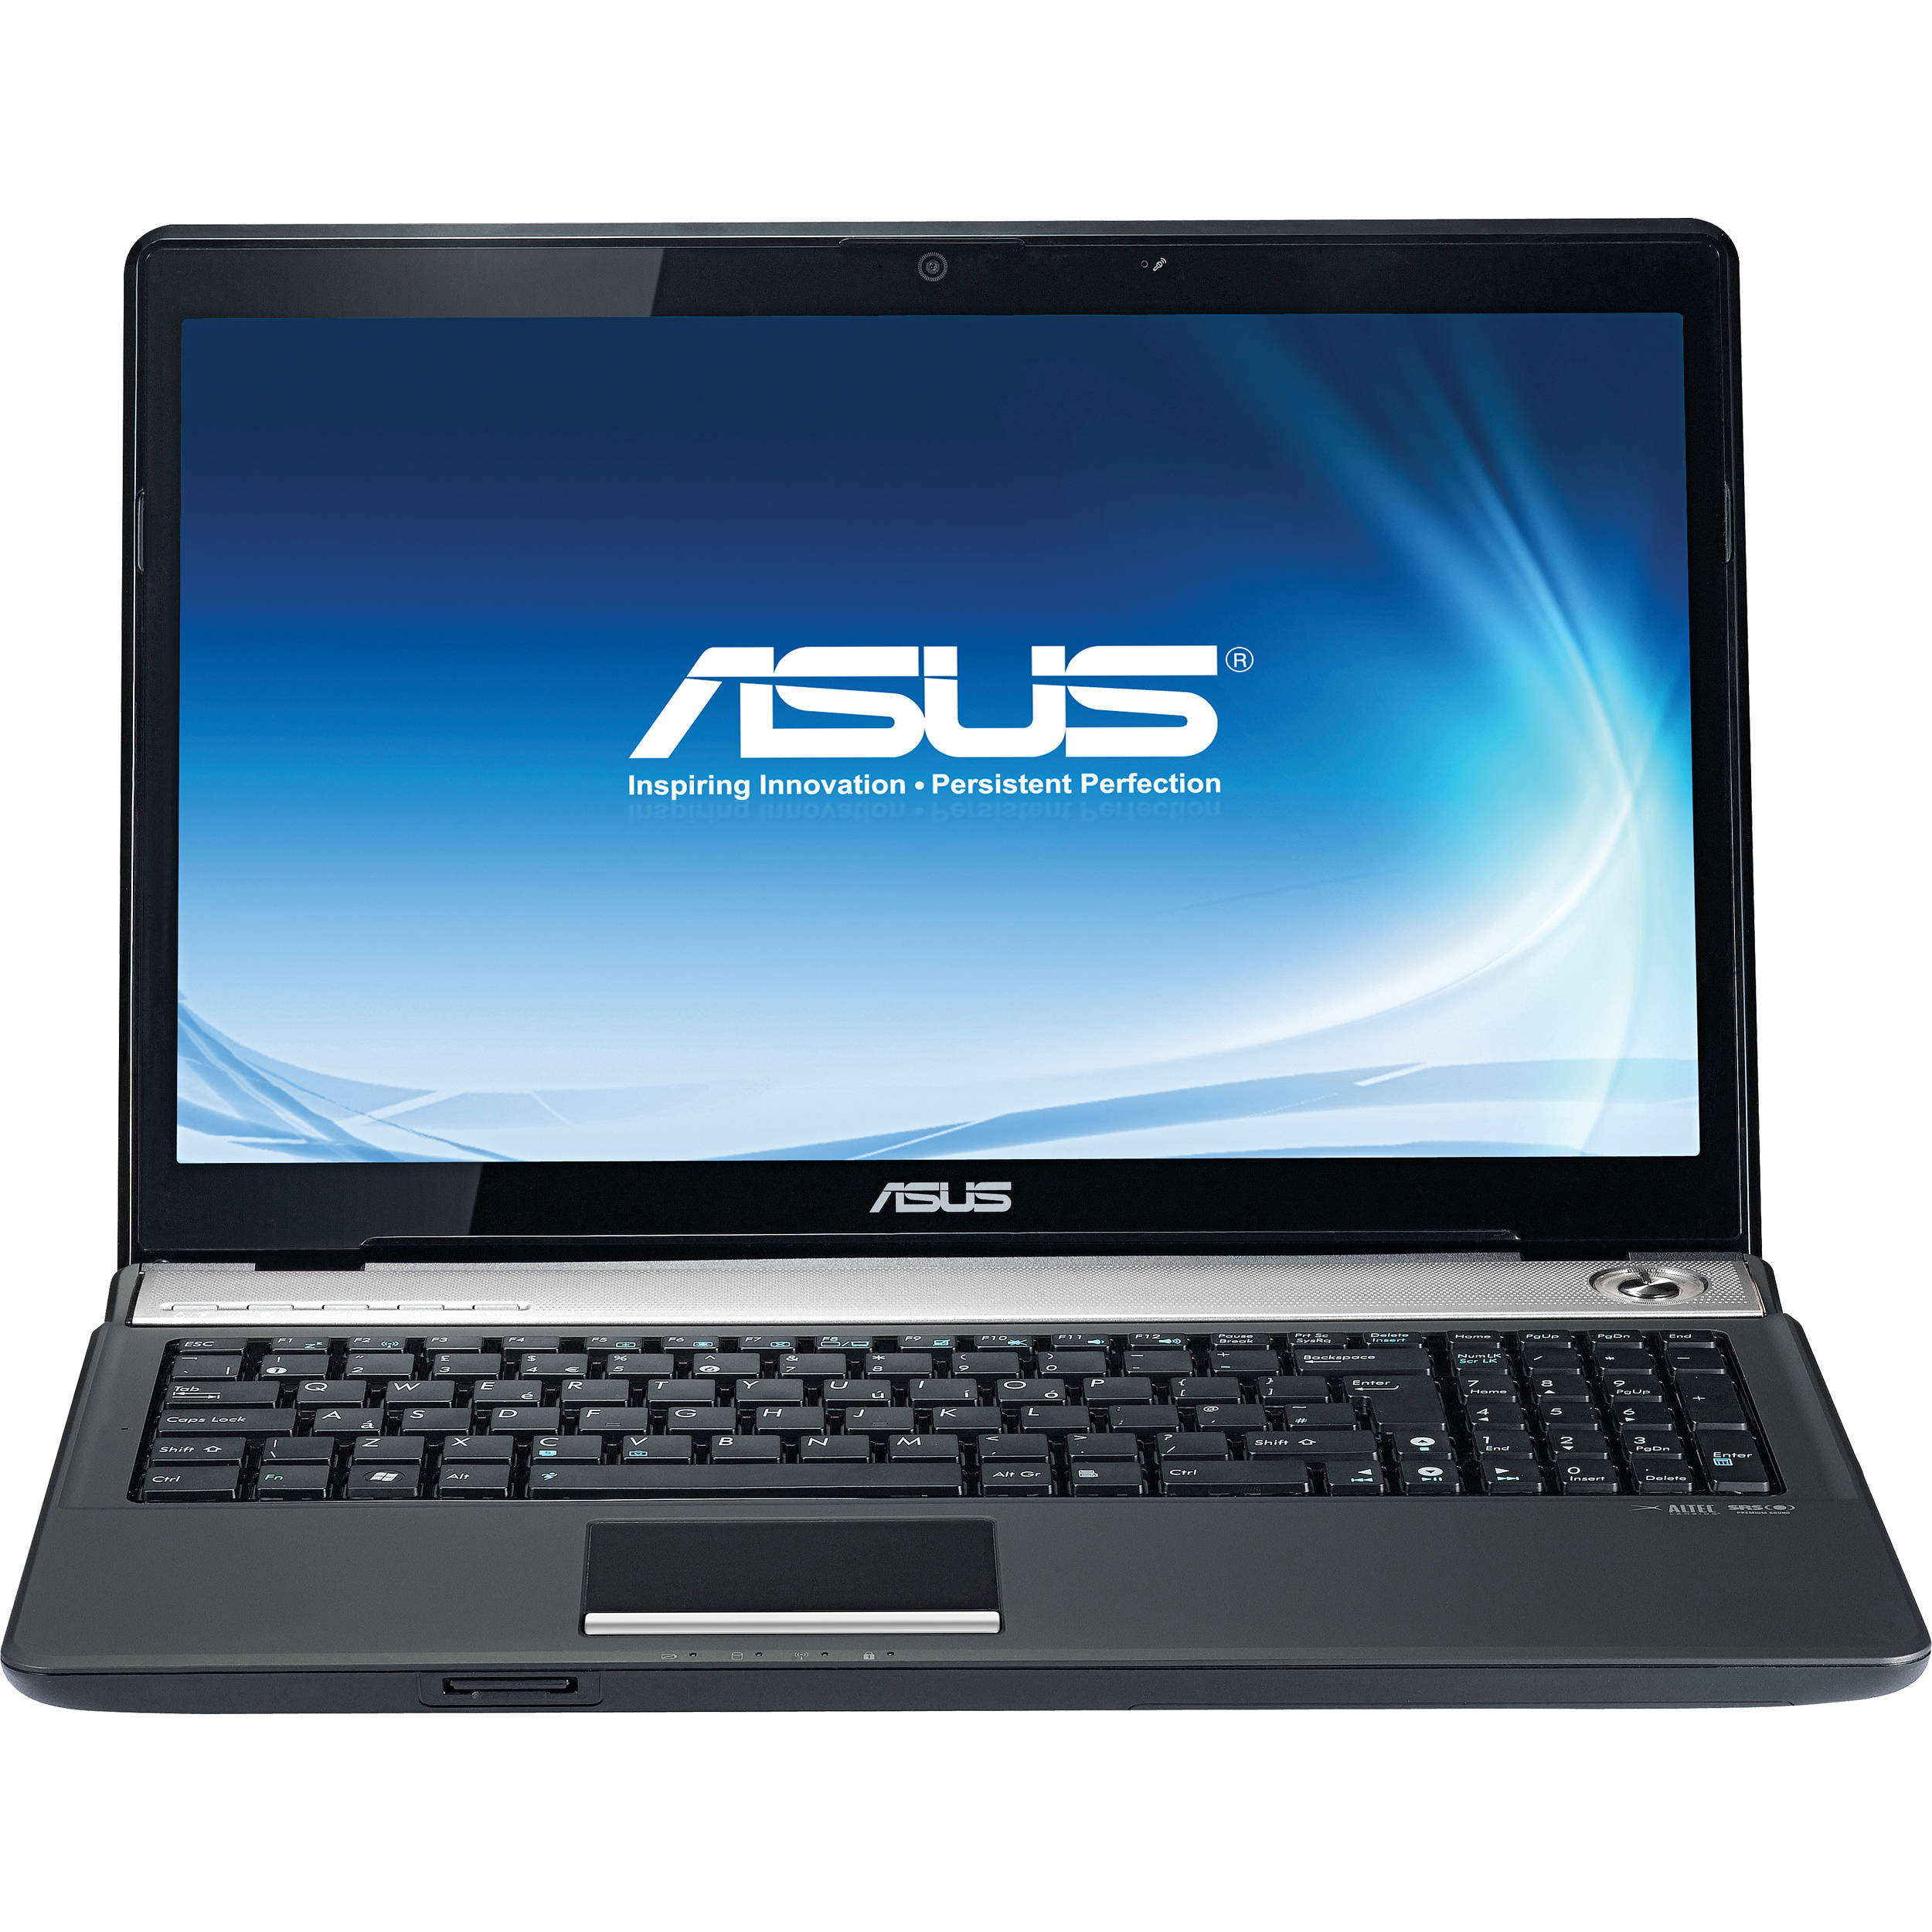 ASUS N61JQ FAST BOOT WINDOWS DRIVER